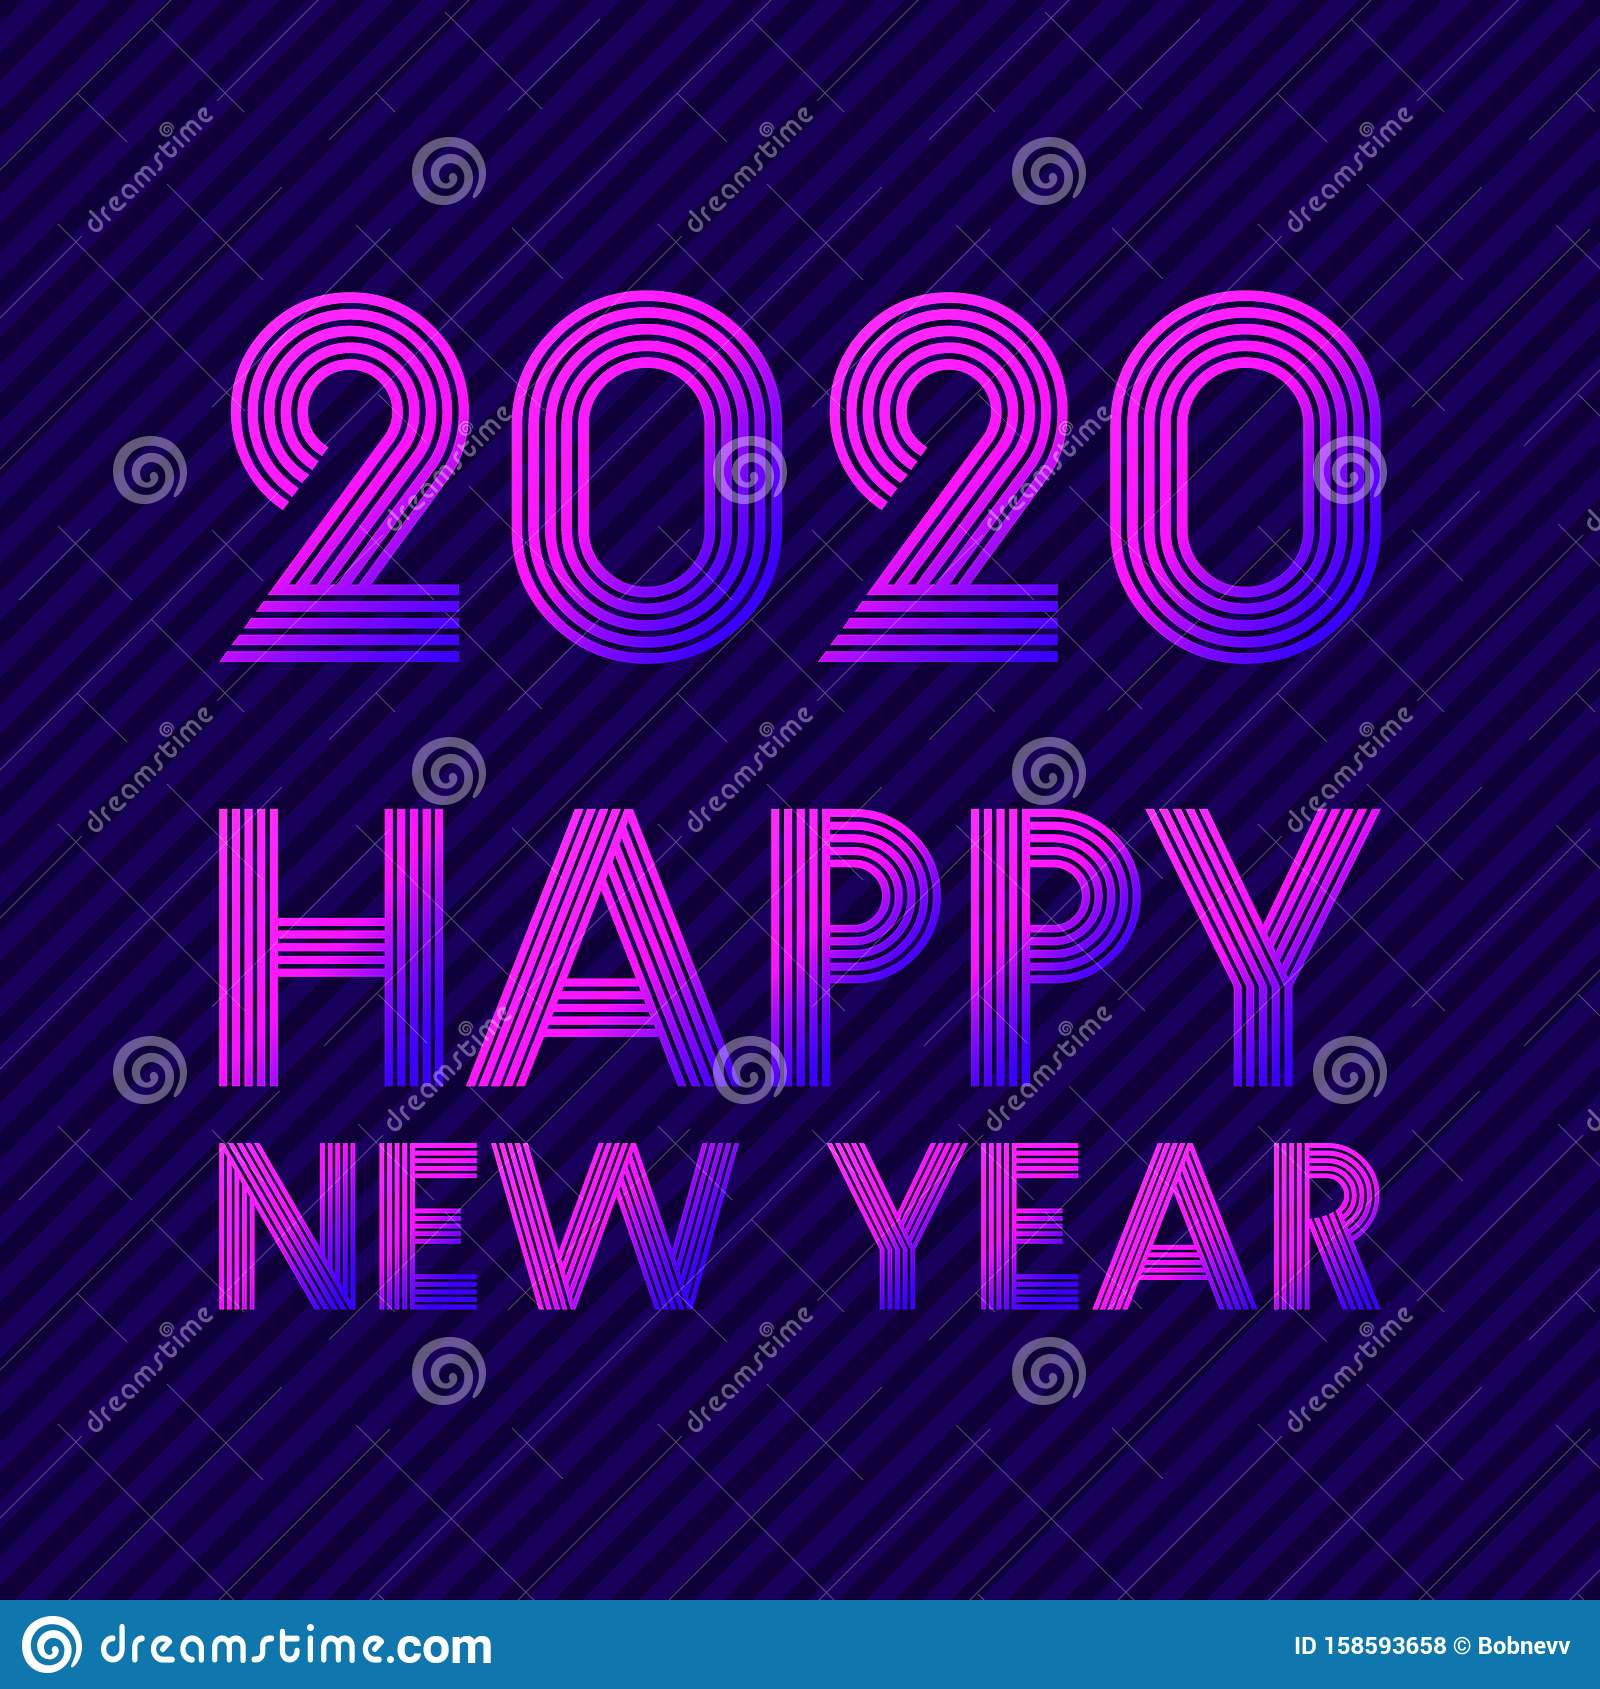 Happy New Year 2020 Background Retro Line Design For Holiday